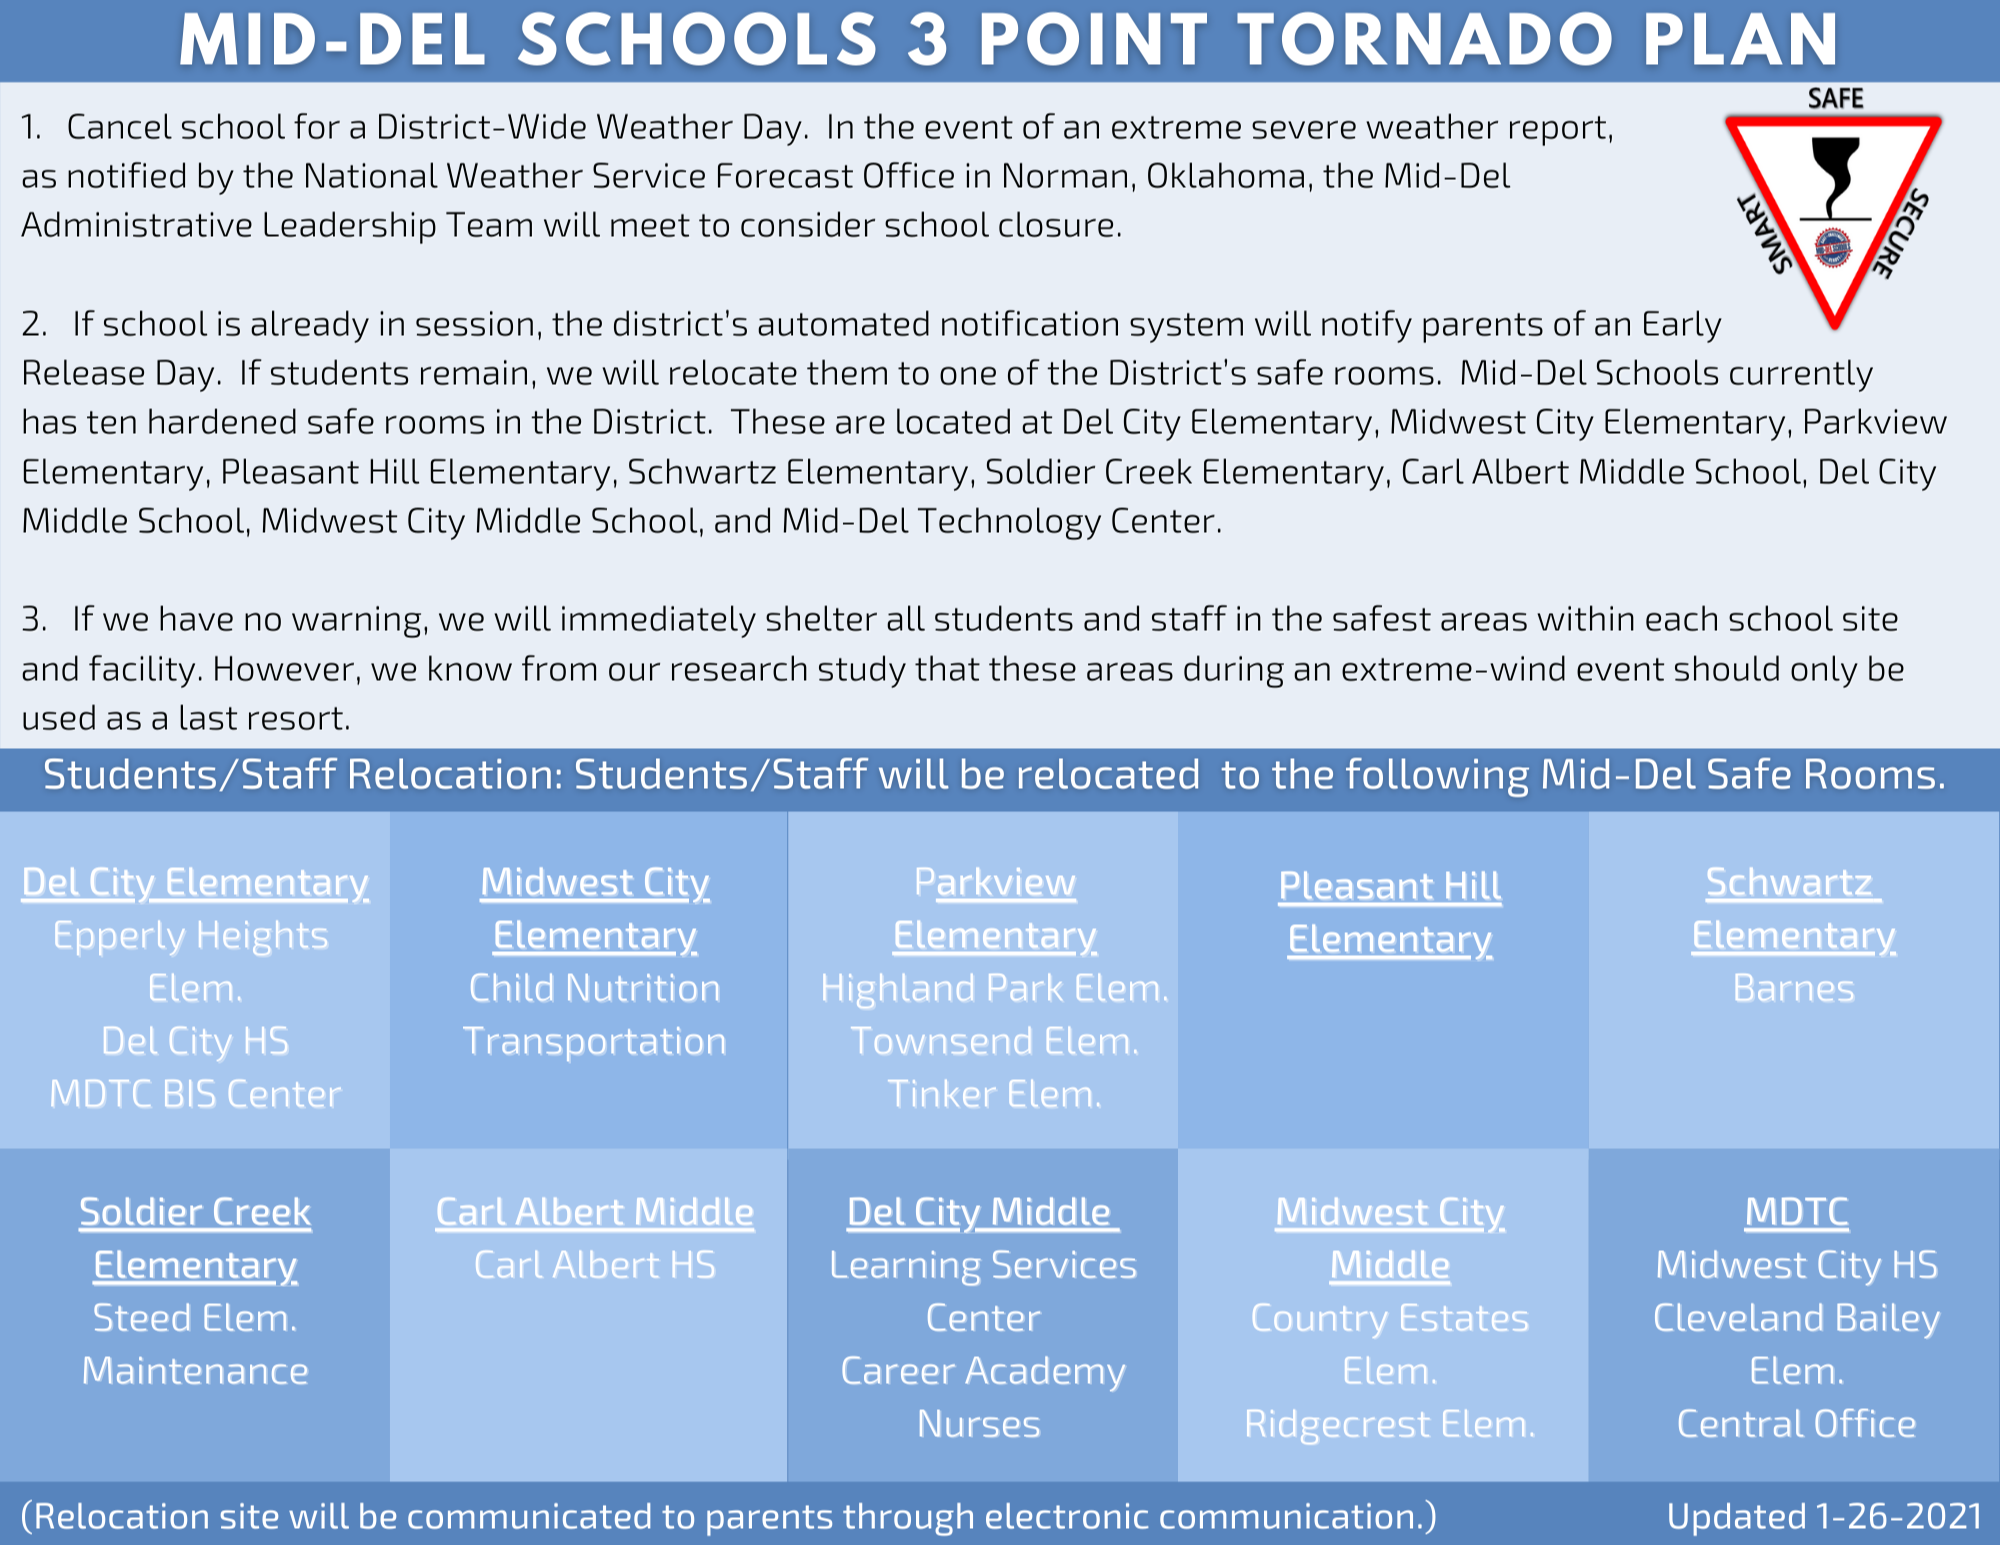 Mid-Del Schools 3 Point Tornado Plan